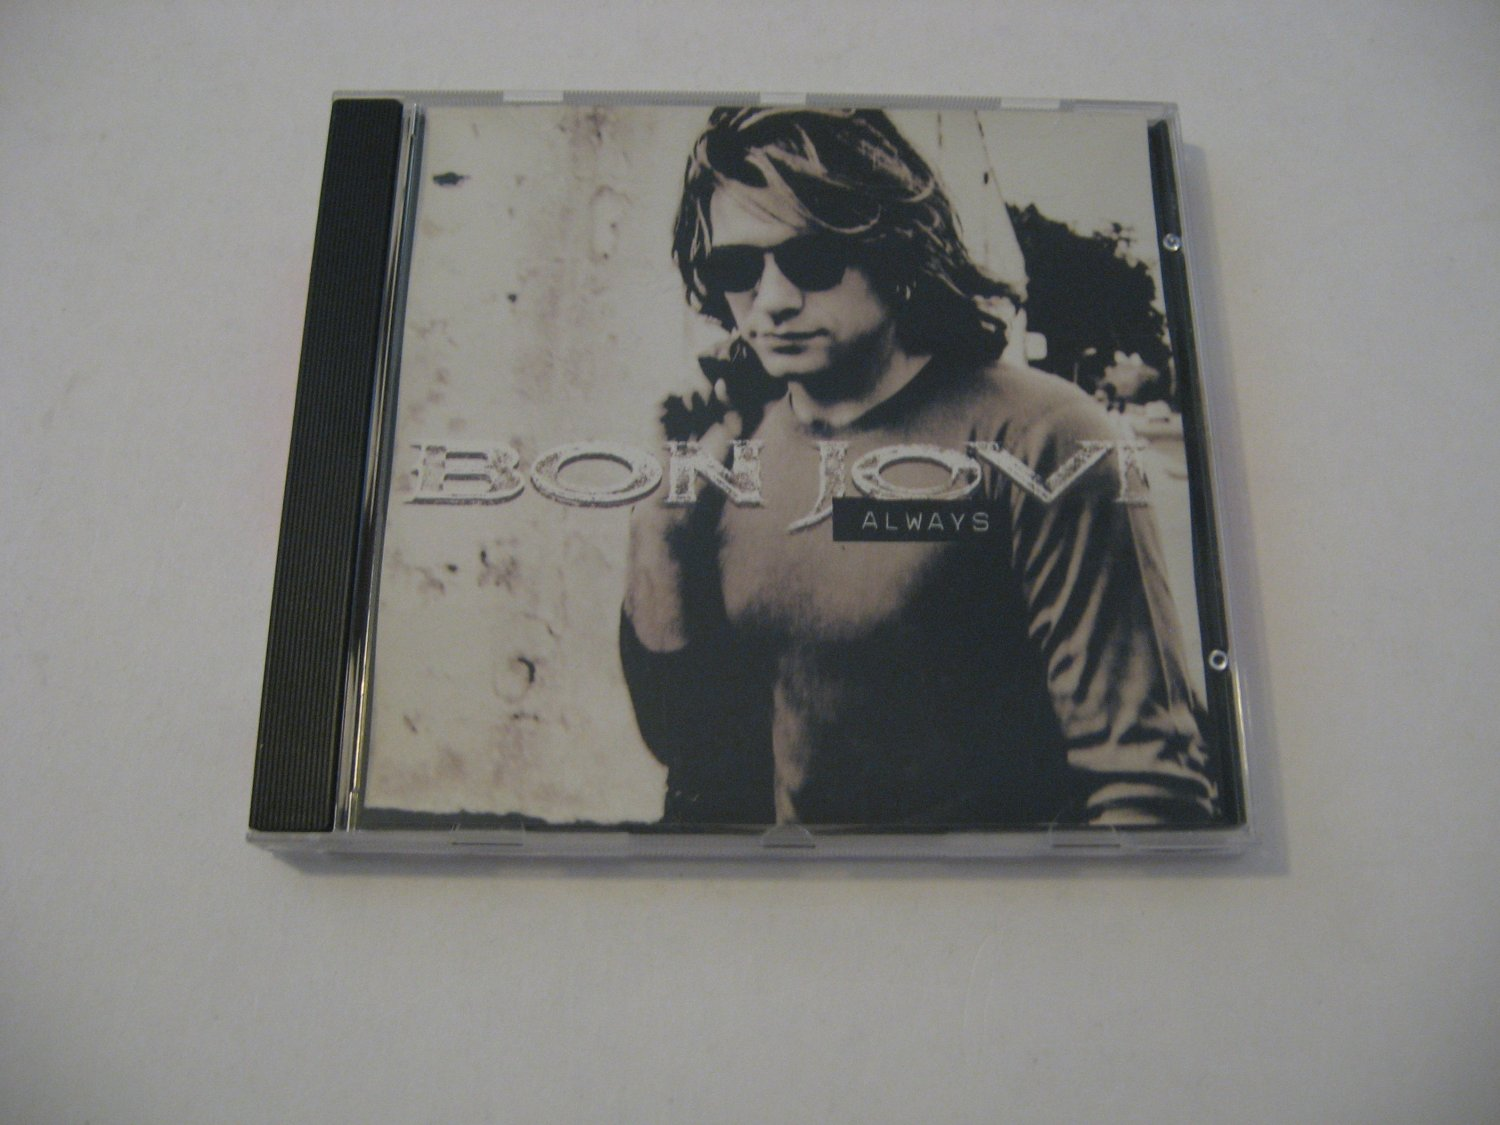 Bon Jovi - Always - Compact Disc